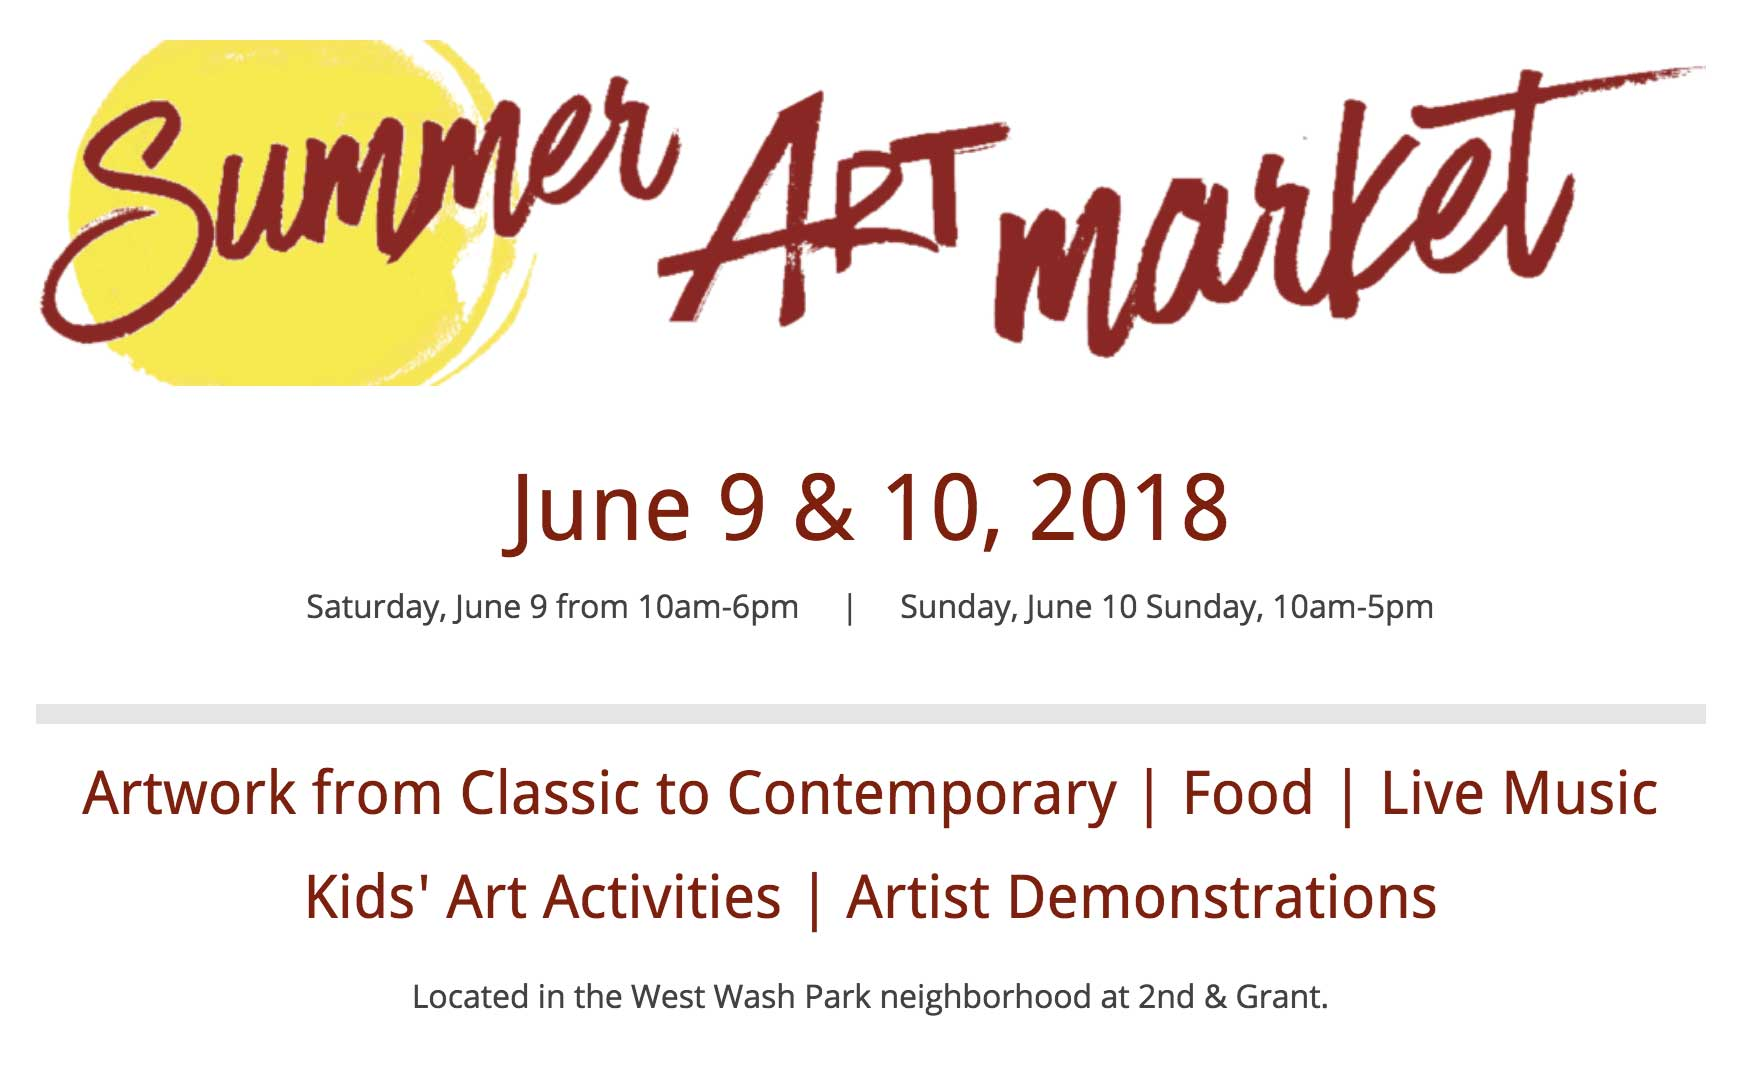 Summer Art Market 2018